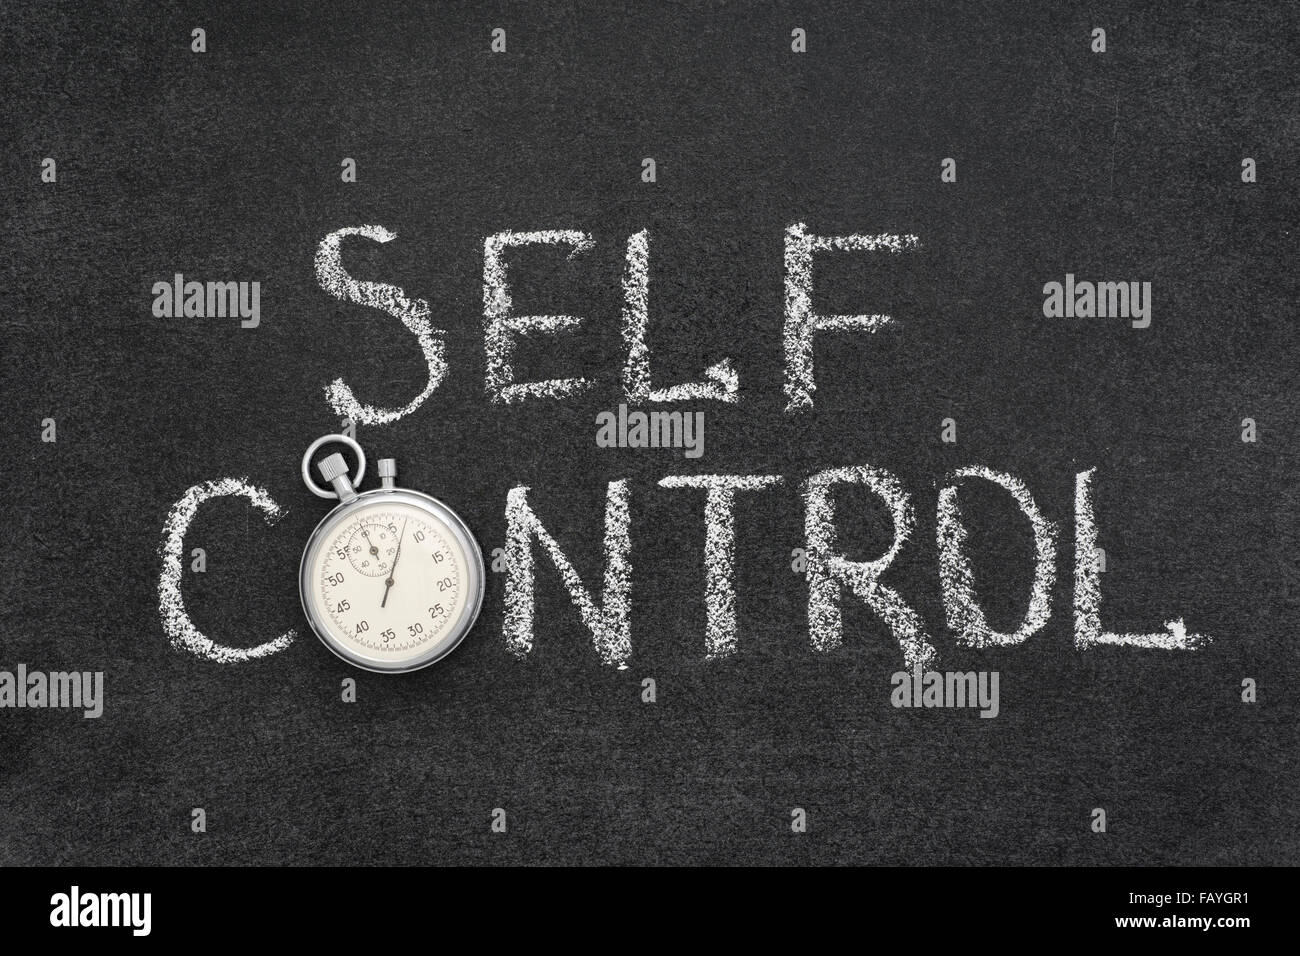 self control phrase handwritten on chalkboard with vintage precise stopwatch used instead of O - Stock Image